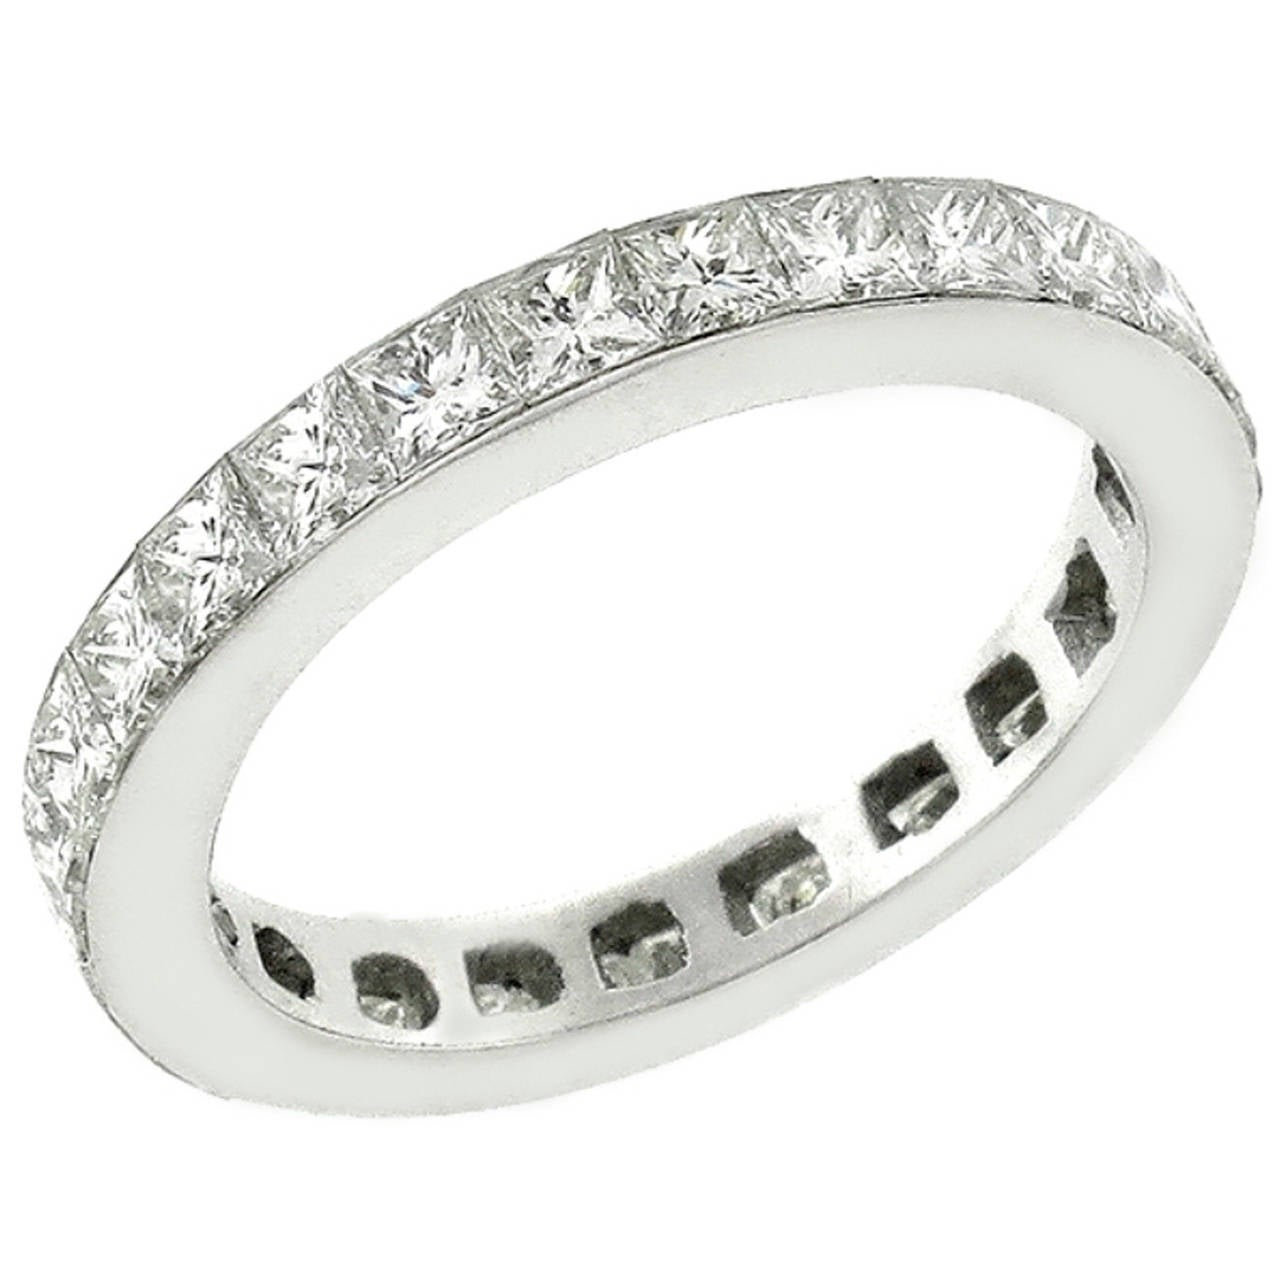 2 25 Carat Princess Cut Diamonds Platinum Eternity Band At